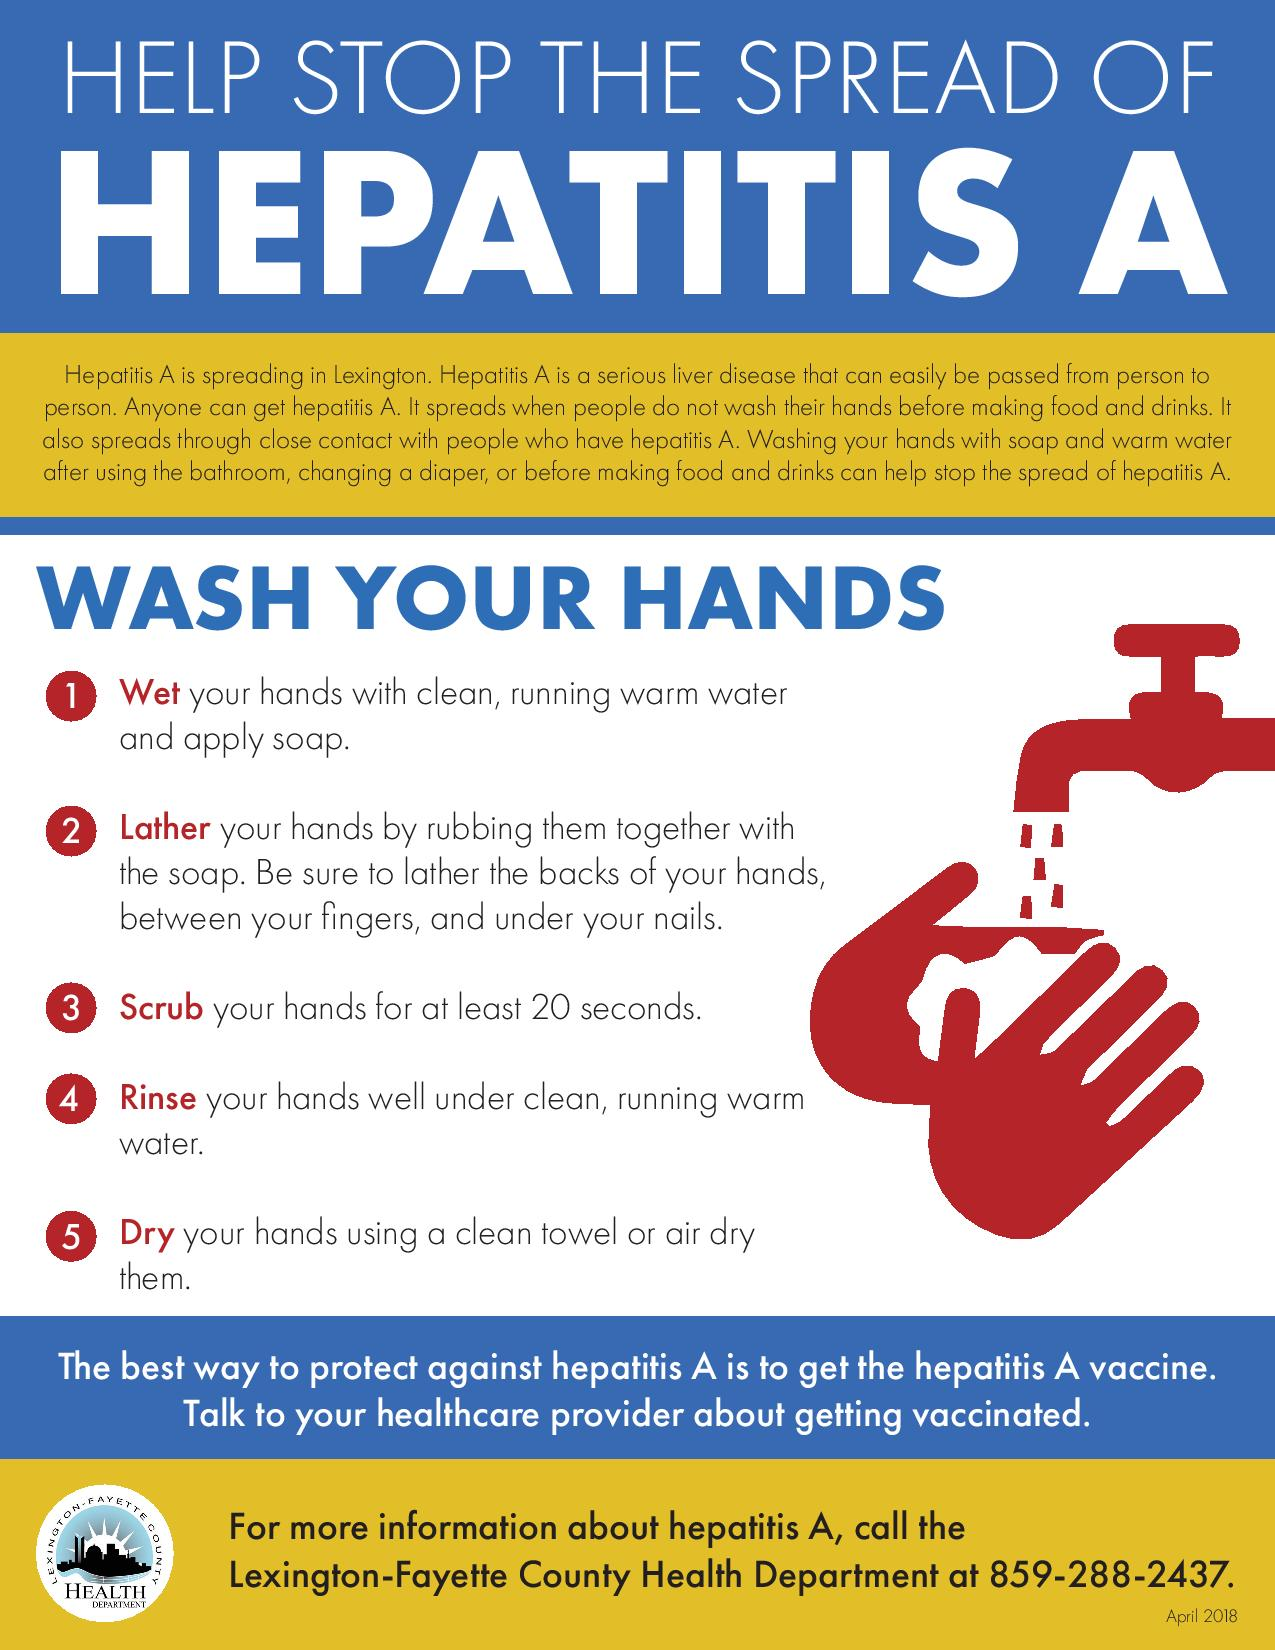 Hepatitis A: Get vaccination, wash your hands for prevention